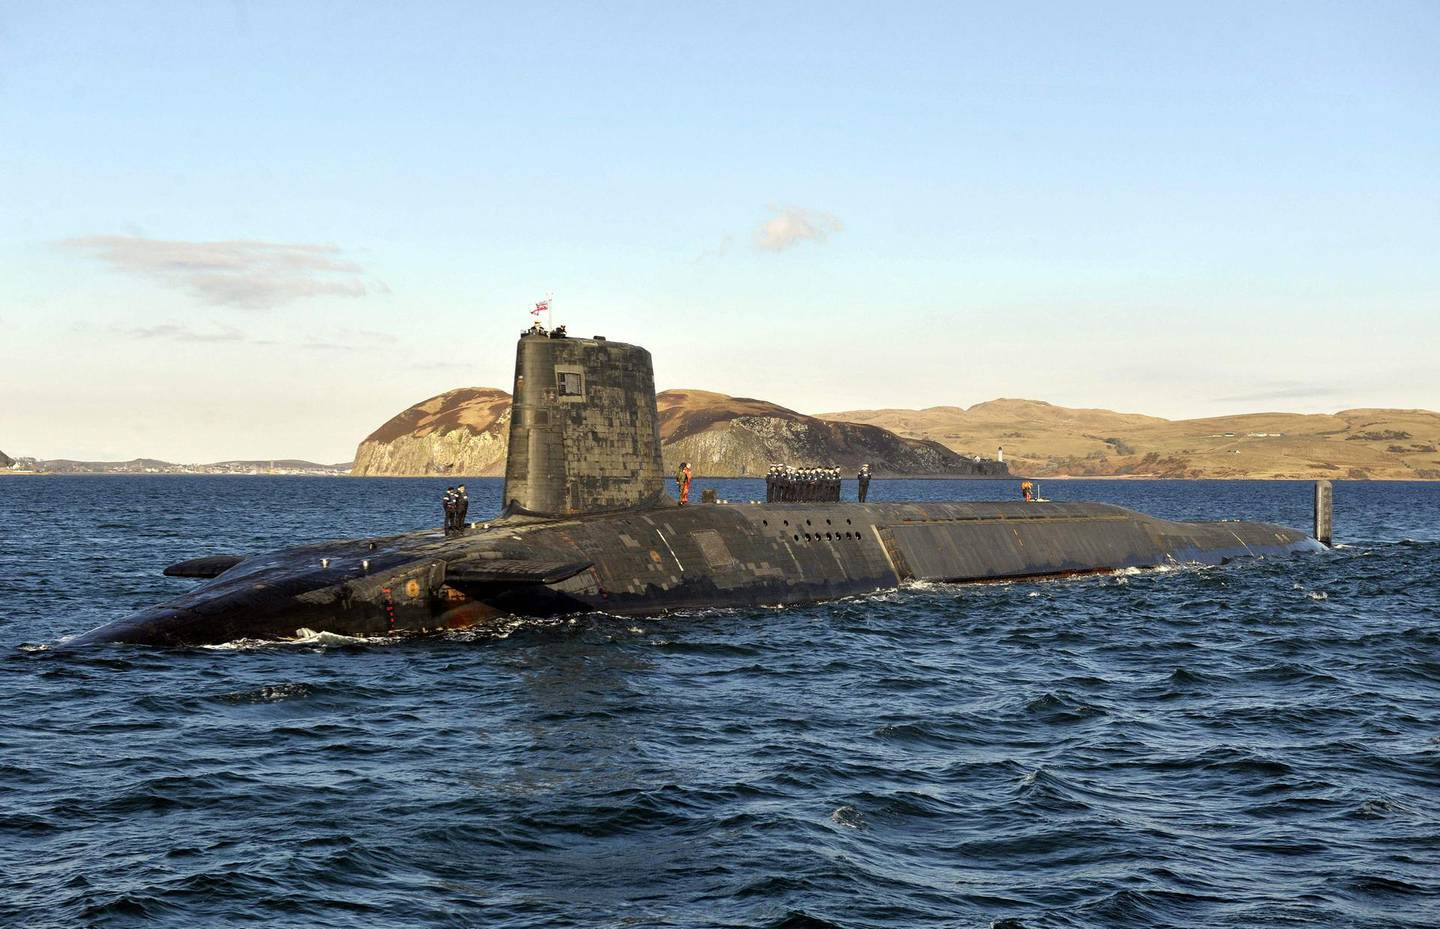 """(FILES) In this file photo taken on April 4, 2013 A picture shows the Trident Nuclear Submarine, HMS Victorious, on patrol off the west coast of Scotland. Russia's ambassador to Britain said on March 21, 2021 that diplomatic ties between the two countries were """"nearly dead"""", after a UK strategic review this week branded Moscow an """"acute direct threat"""". Andrei Kelin also criticised Britain's decision to bolster its nuclear stockpile, arguing the reversal of decades of policy was a violation of various international agreements.  / AFP / Andy Buchanan"""